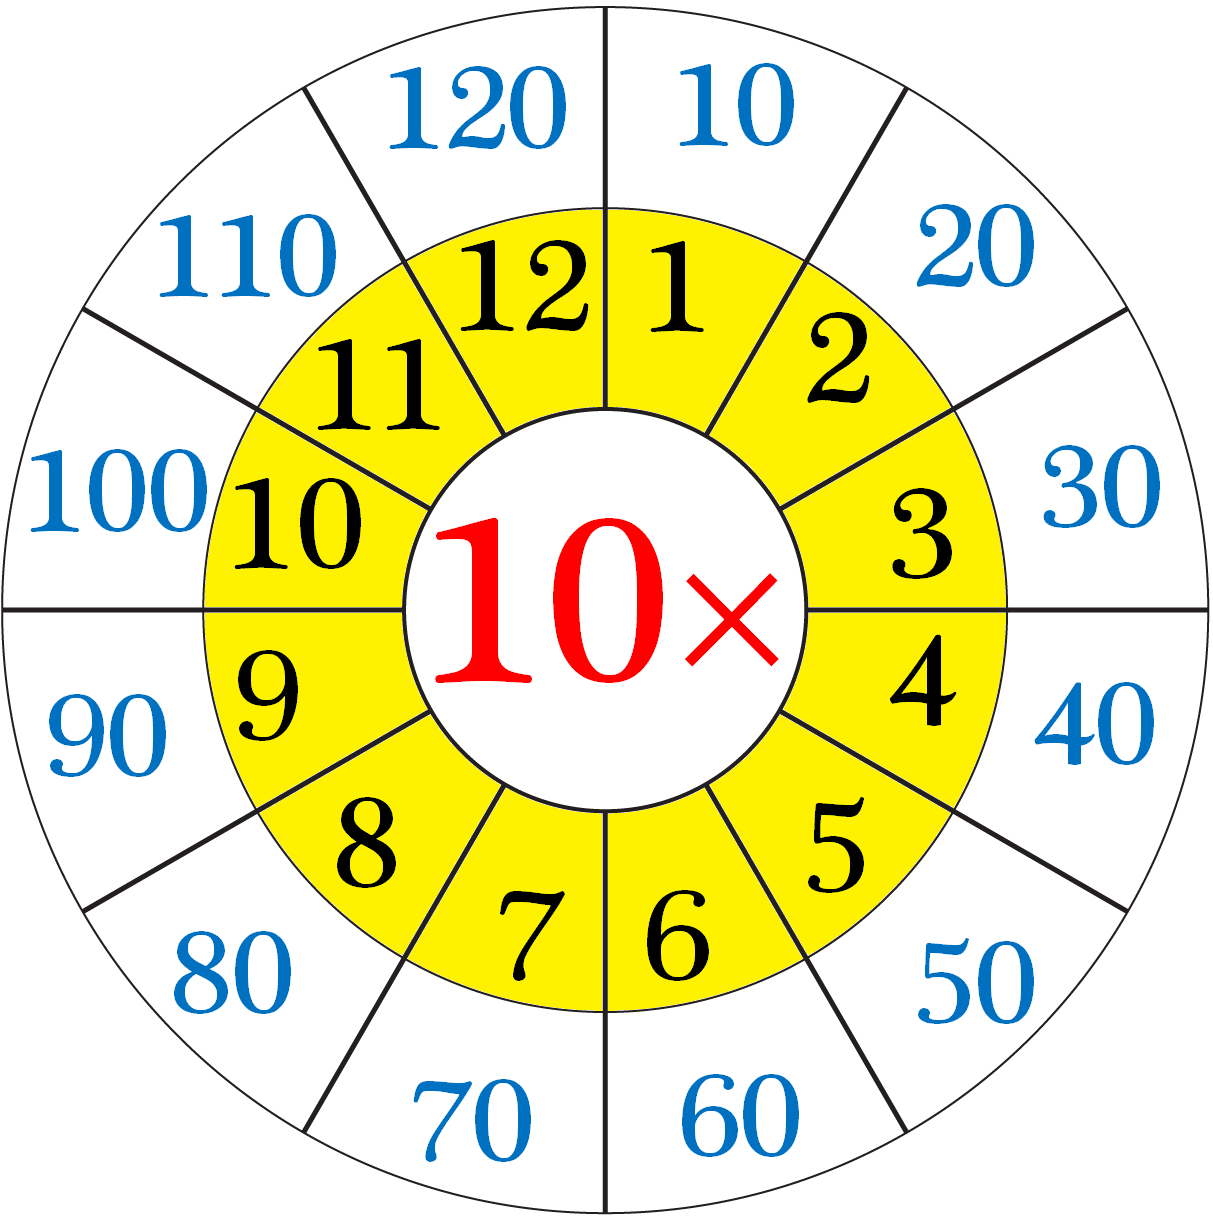 Multiplication Table Of 10 10 Times Table On Number Line